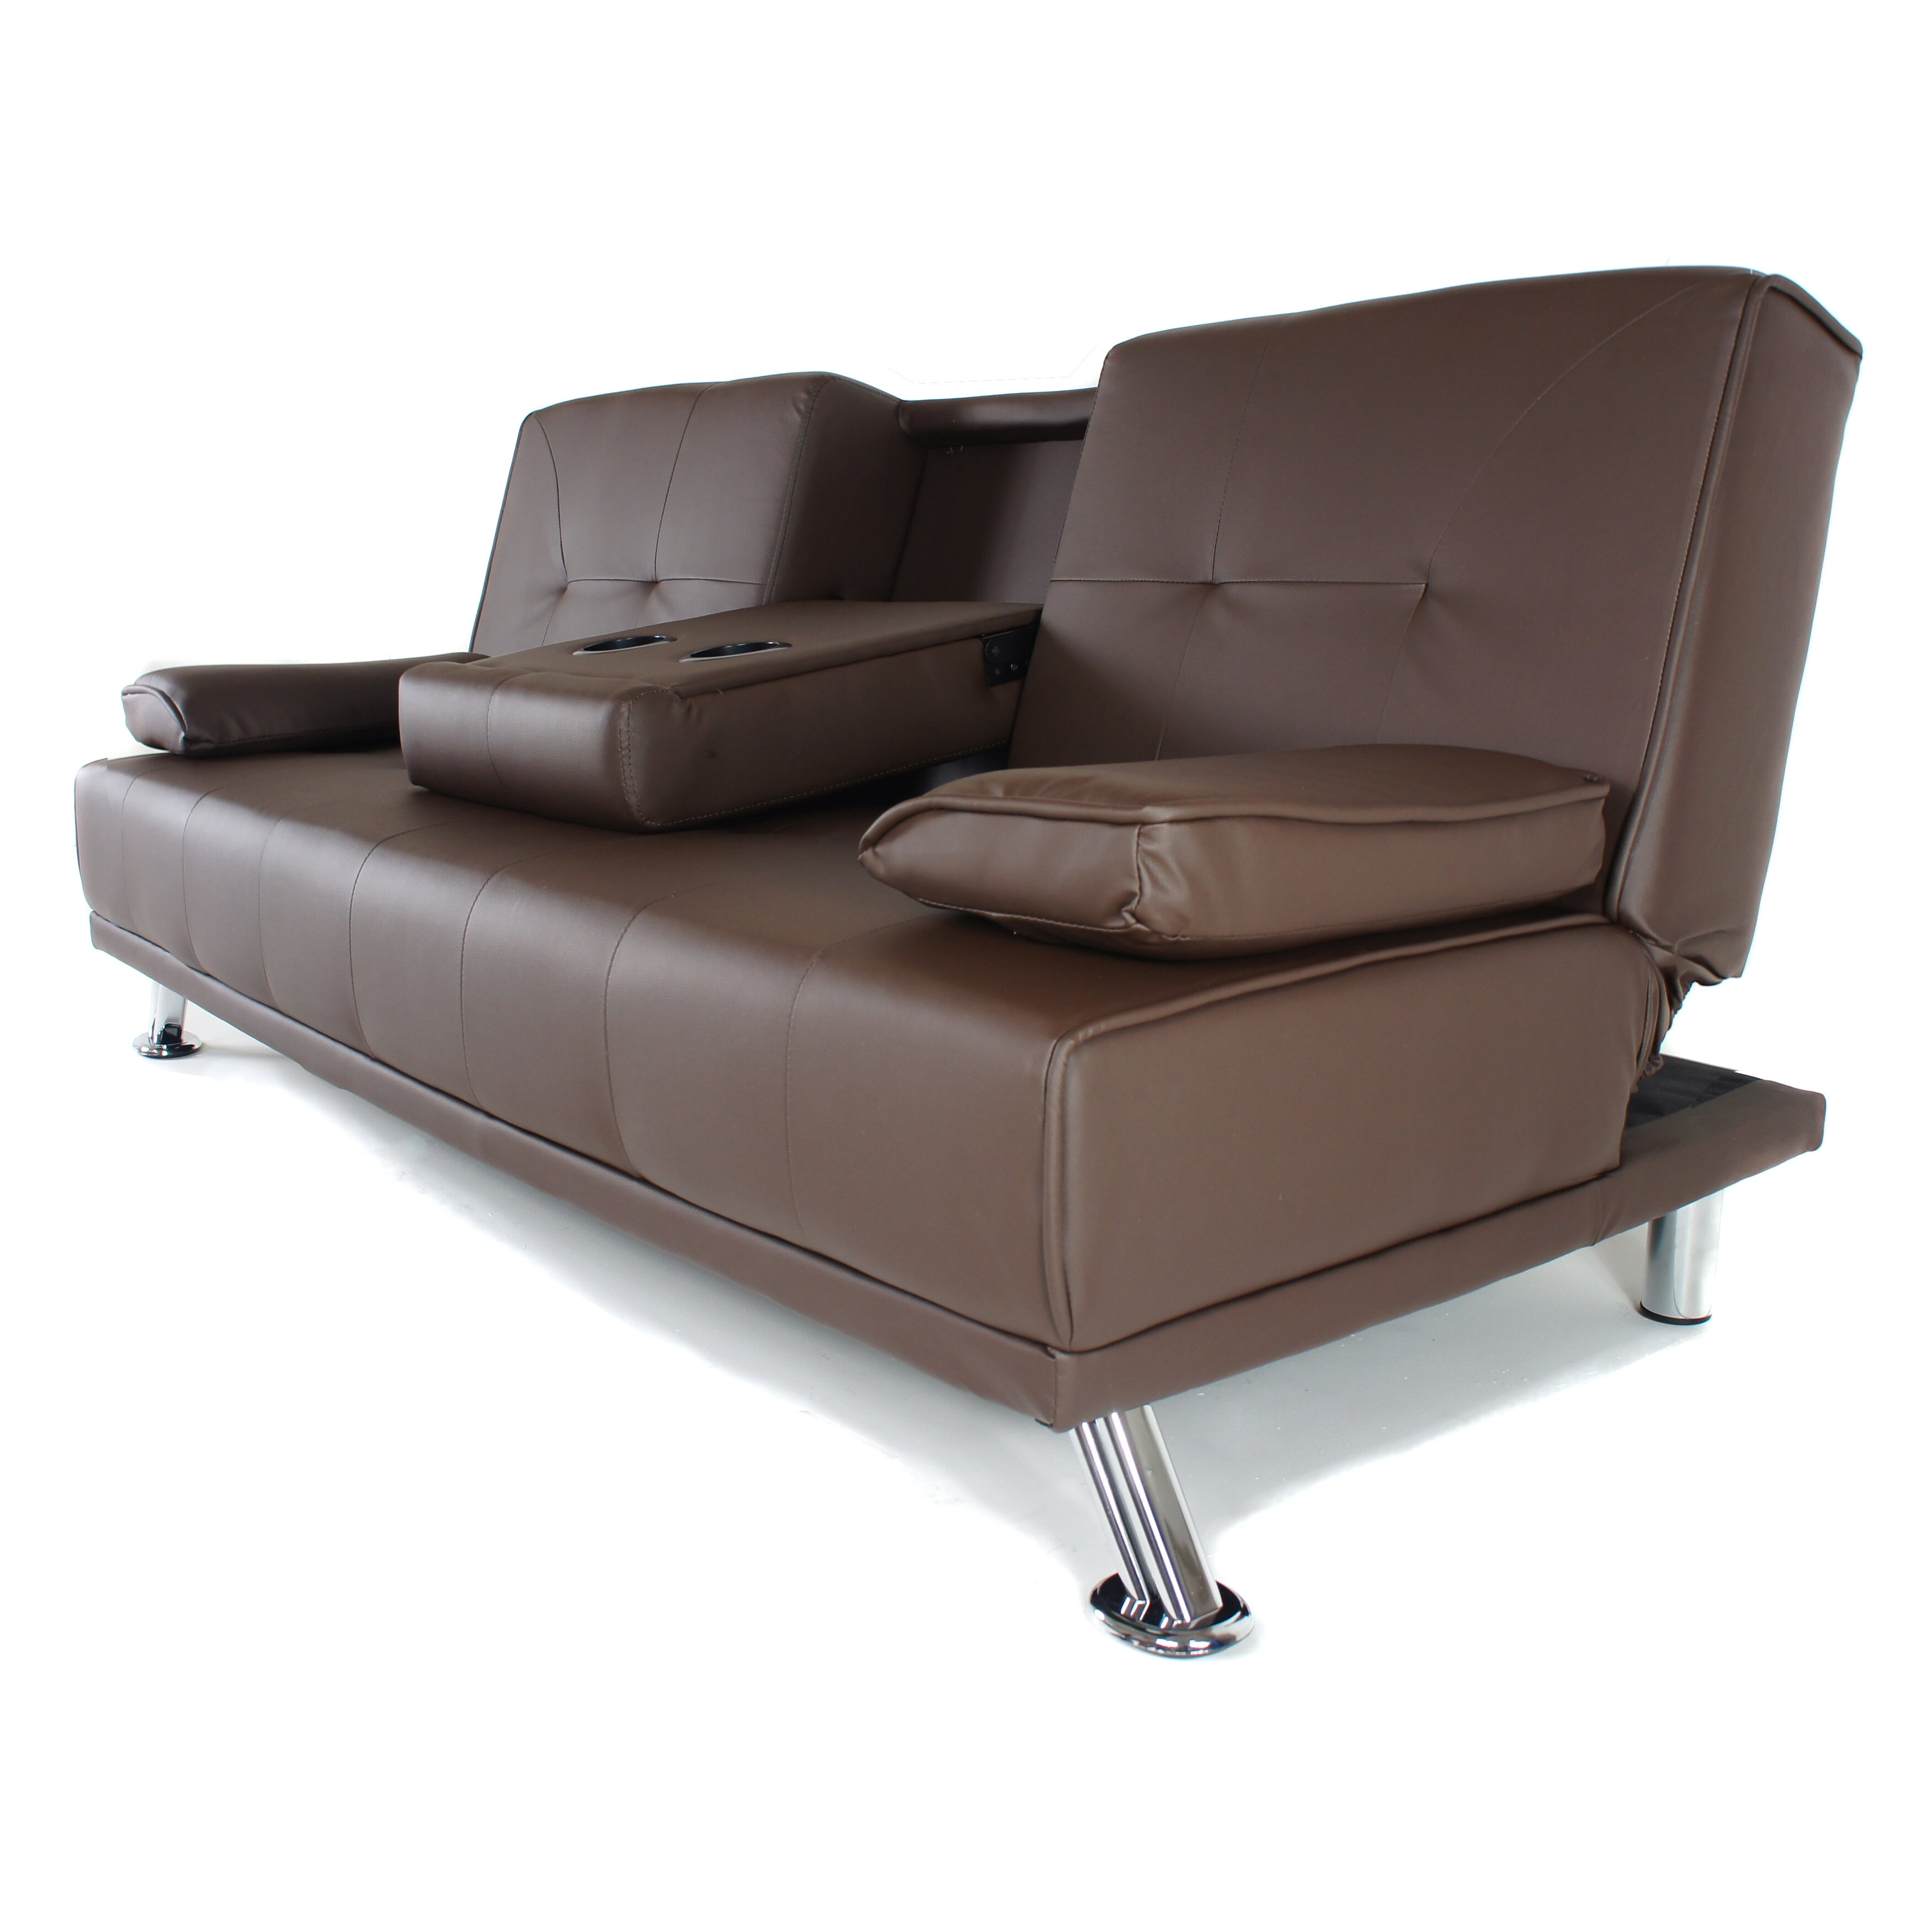 House additions croft 3 seater clic clac sofa bed for Clic clac housse